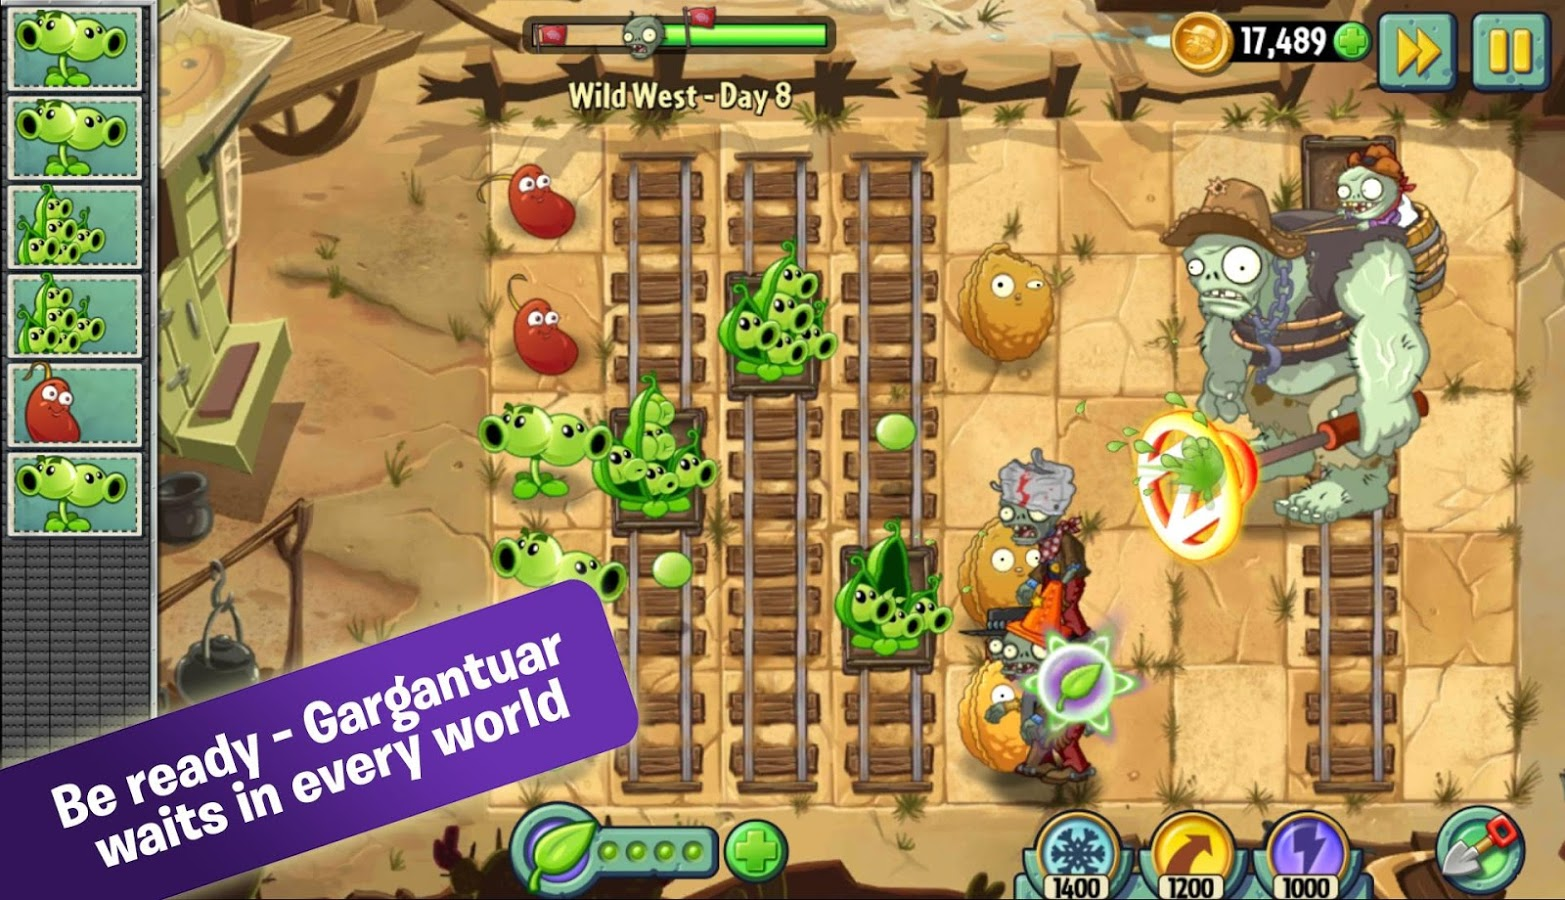 Plants Vs Zombies Mod APK - Download Unlimited Sun & Coins for Android